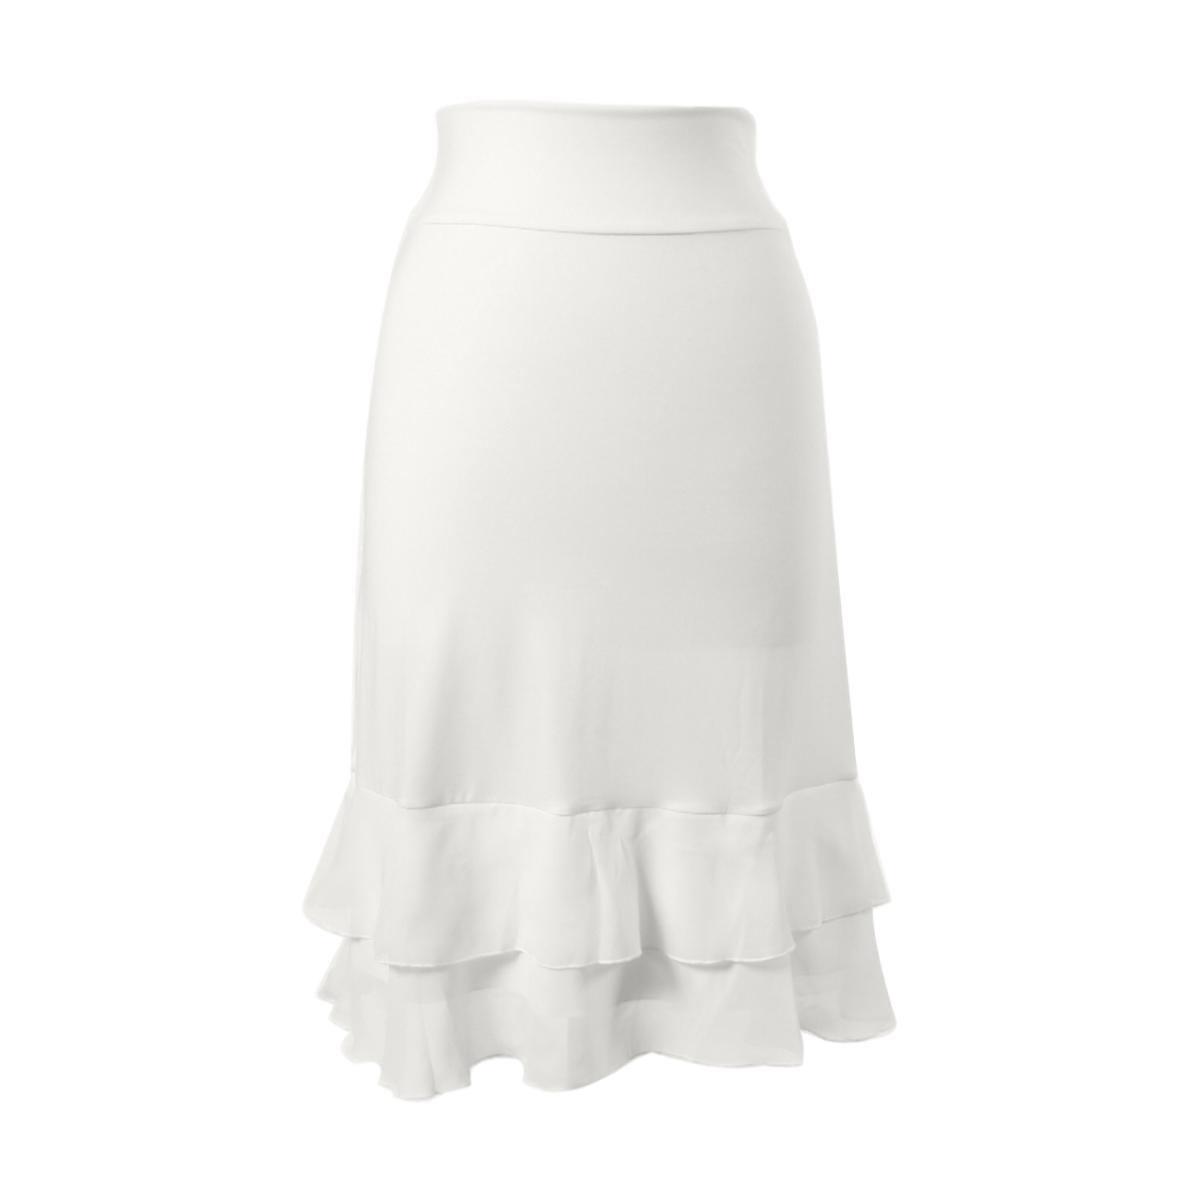 Iris Chiffon Layering Skirt | white, skirt extenders, Peekaboo Chic | Modest Layering Apparel for women